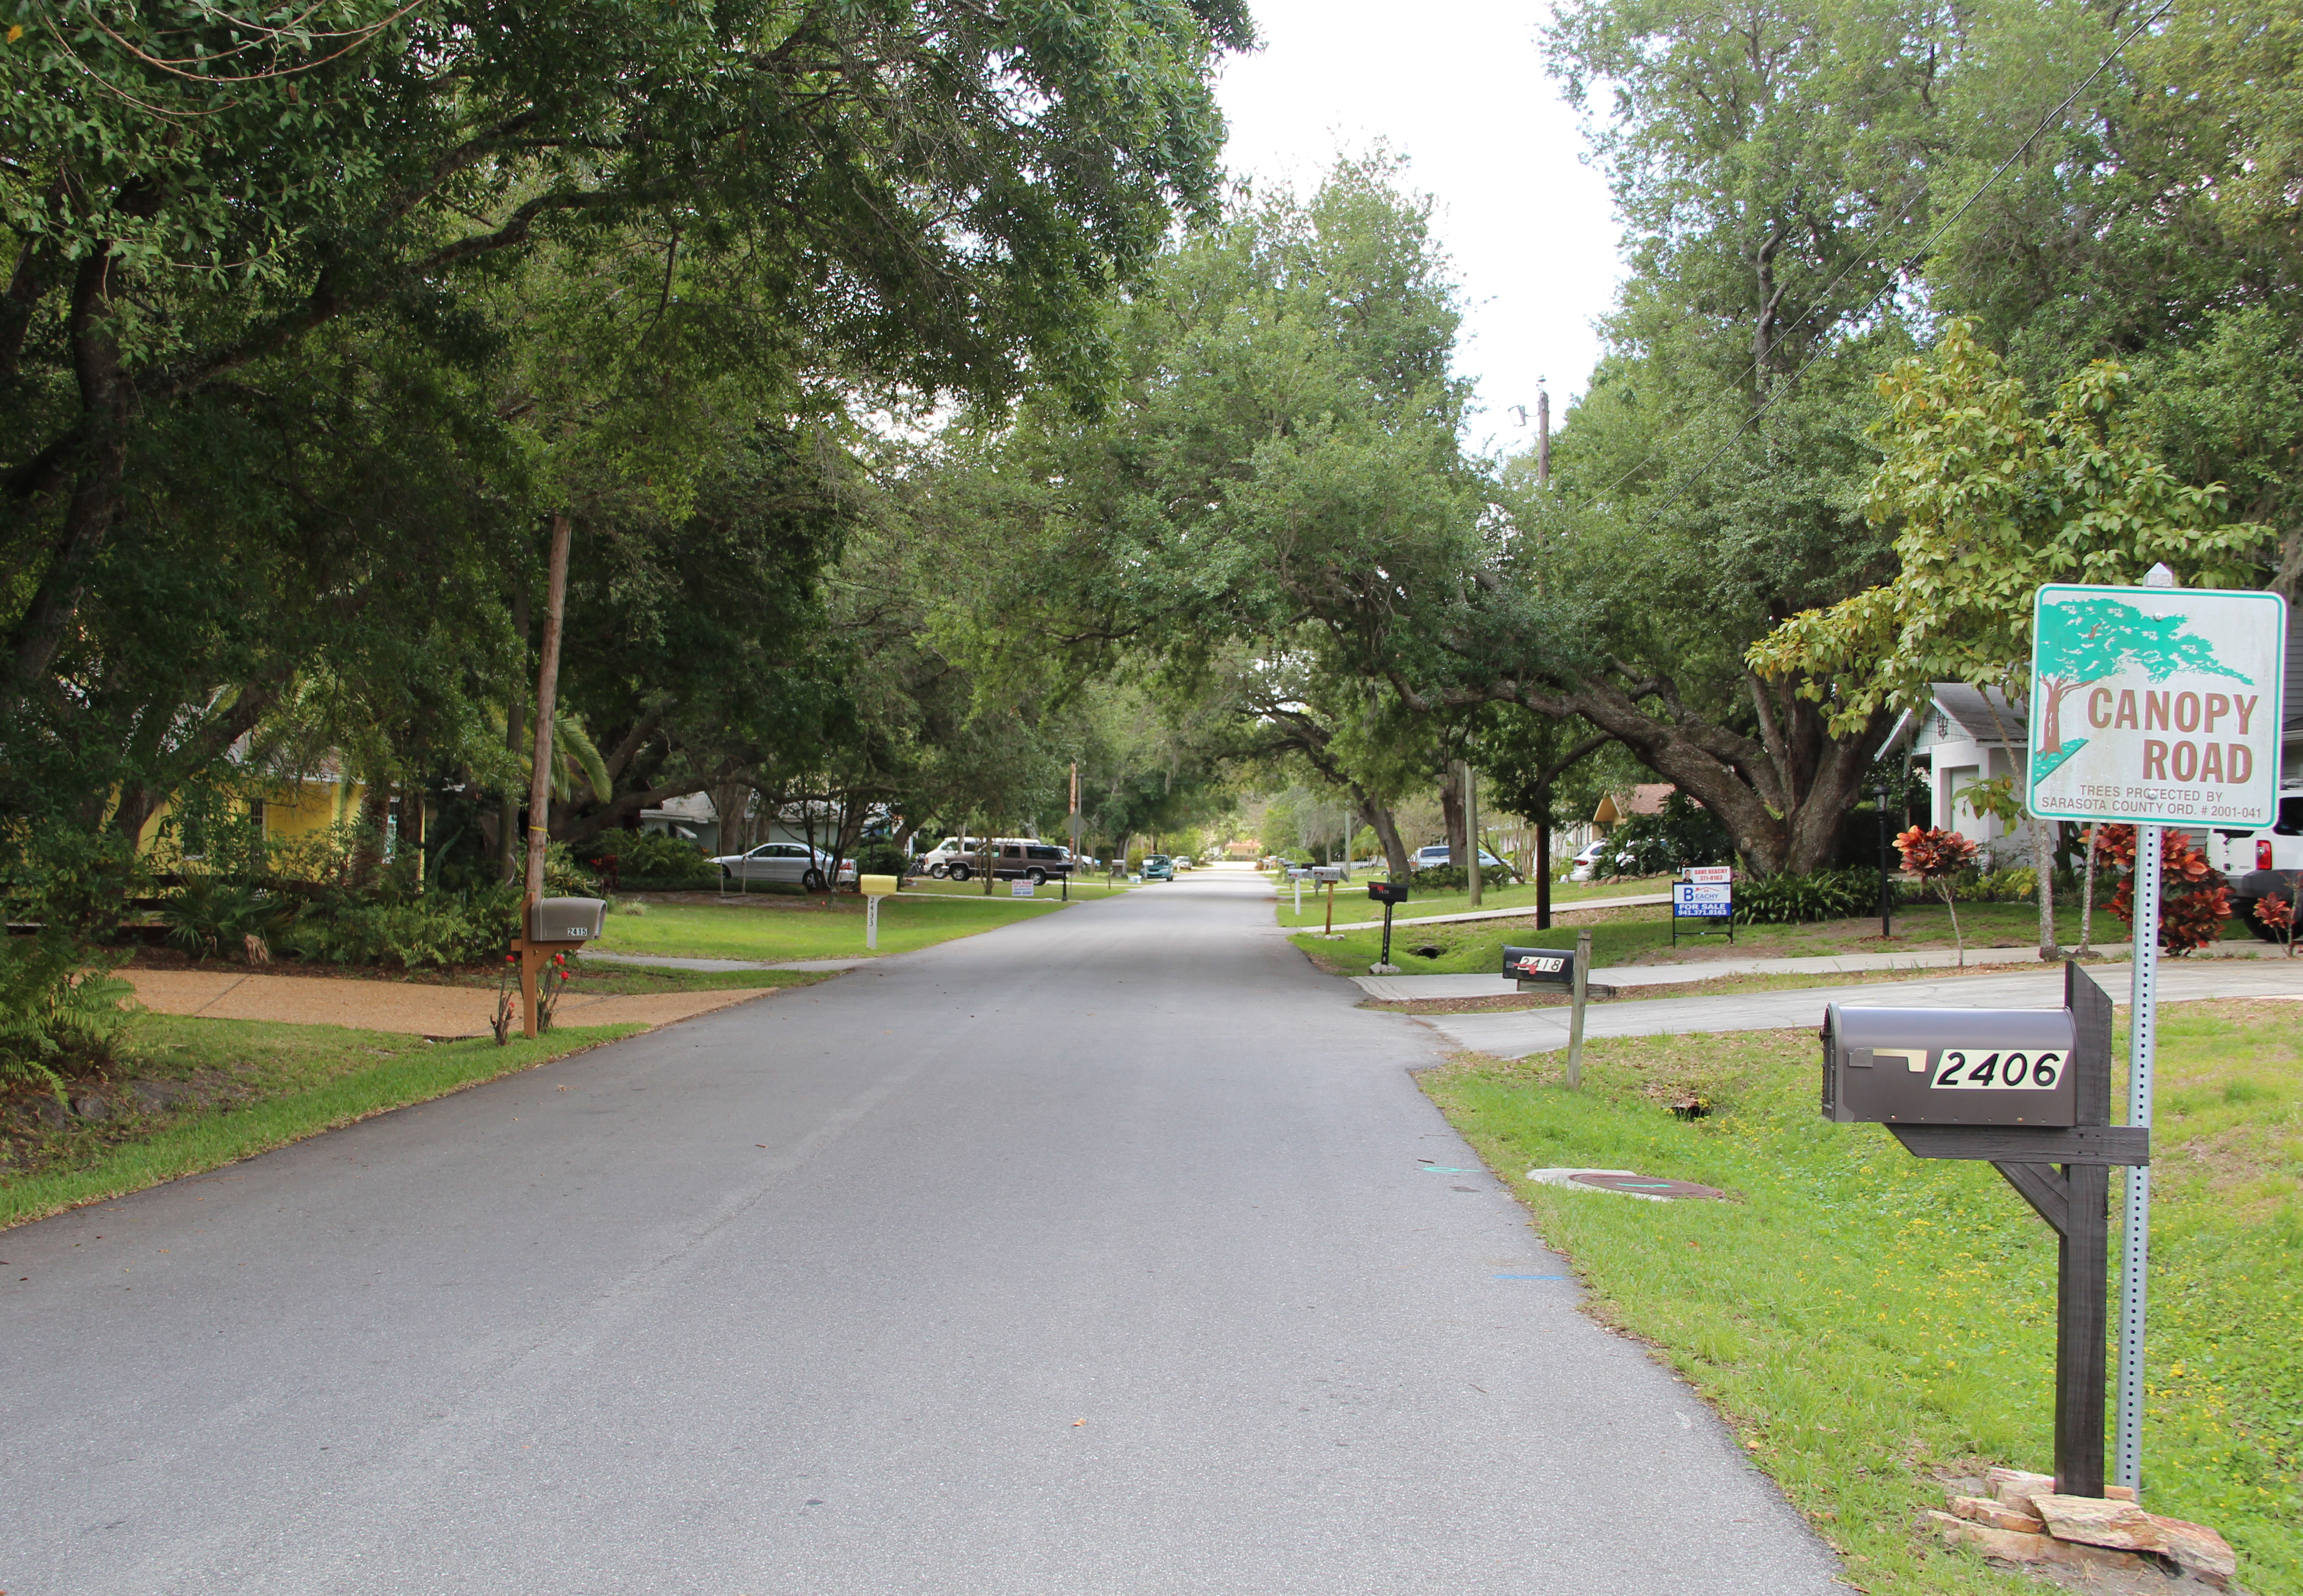 Canopy Roads are found in various parts of Sarasota County. News Leader archive & More county segments could be eligible for Canopy Road designation